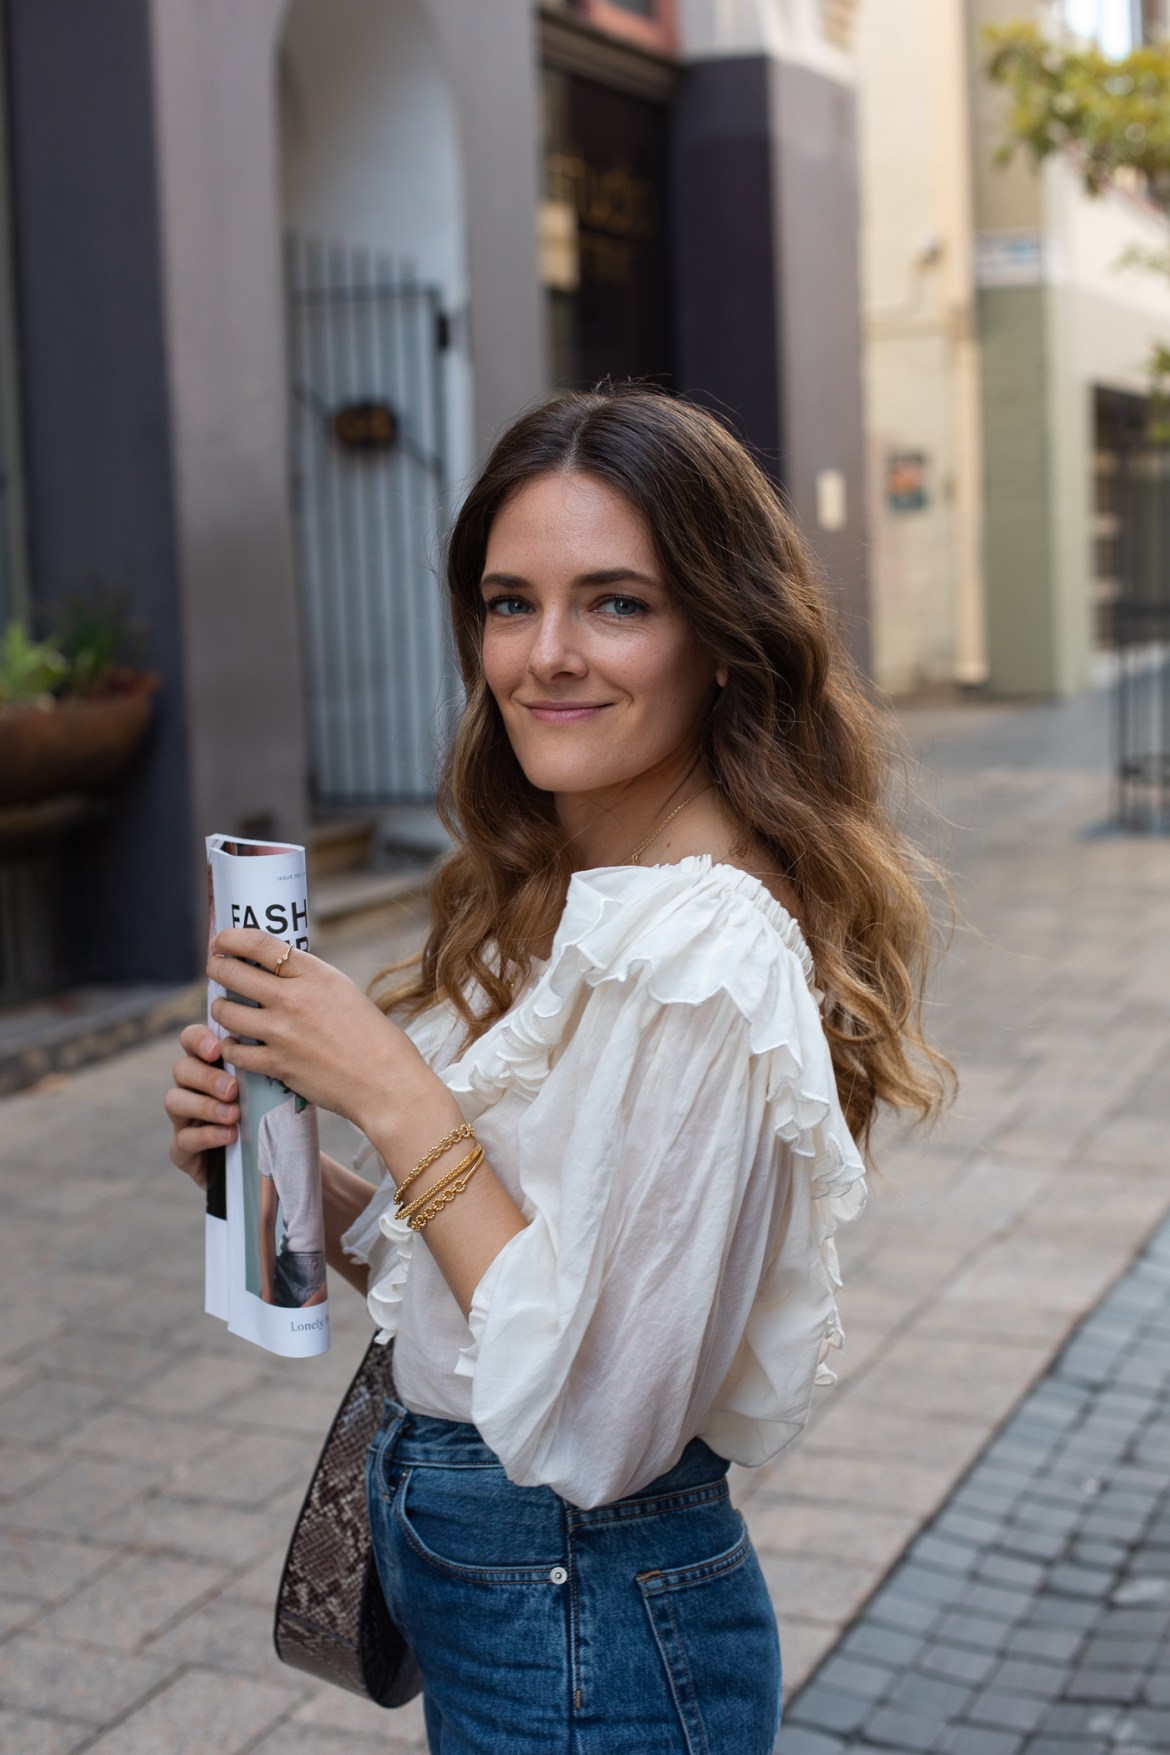 luxury fashion blogger Jenelle Witty from Inspiring Wit wearing Innika Choo cotton ruffle top with Astley Clarke gold bangles